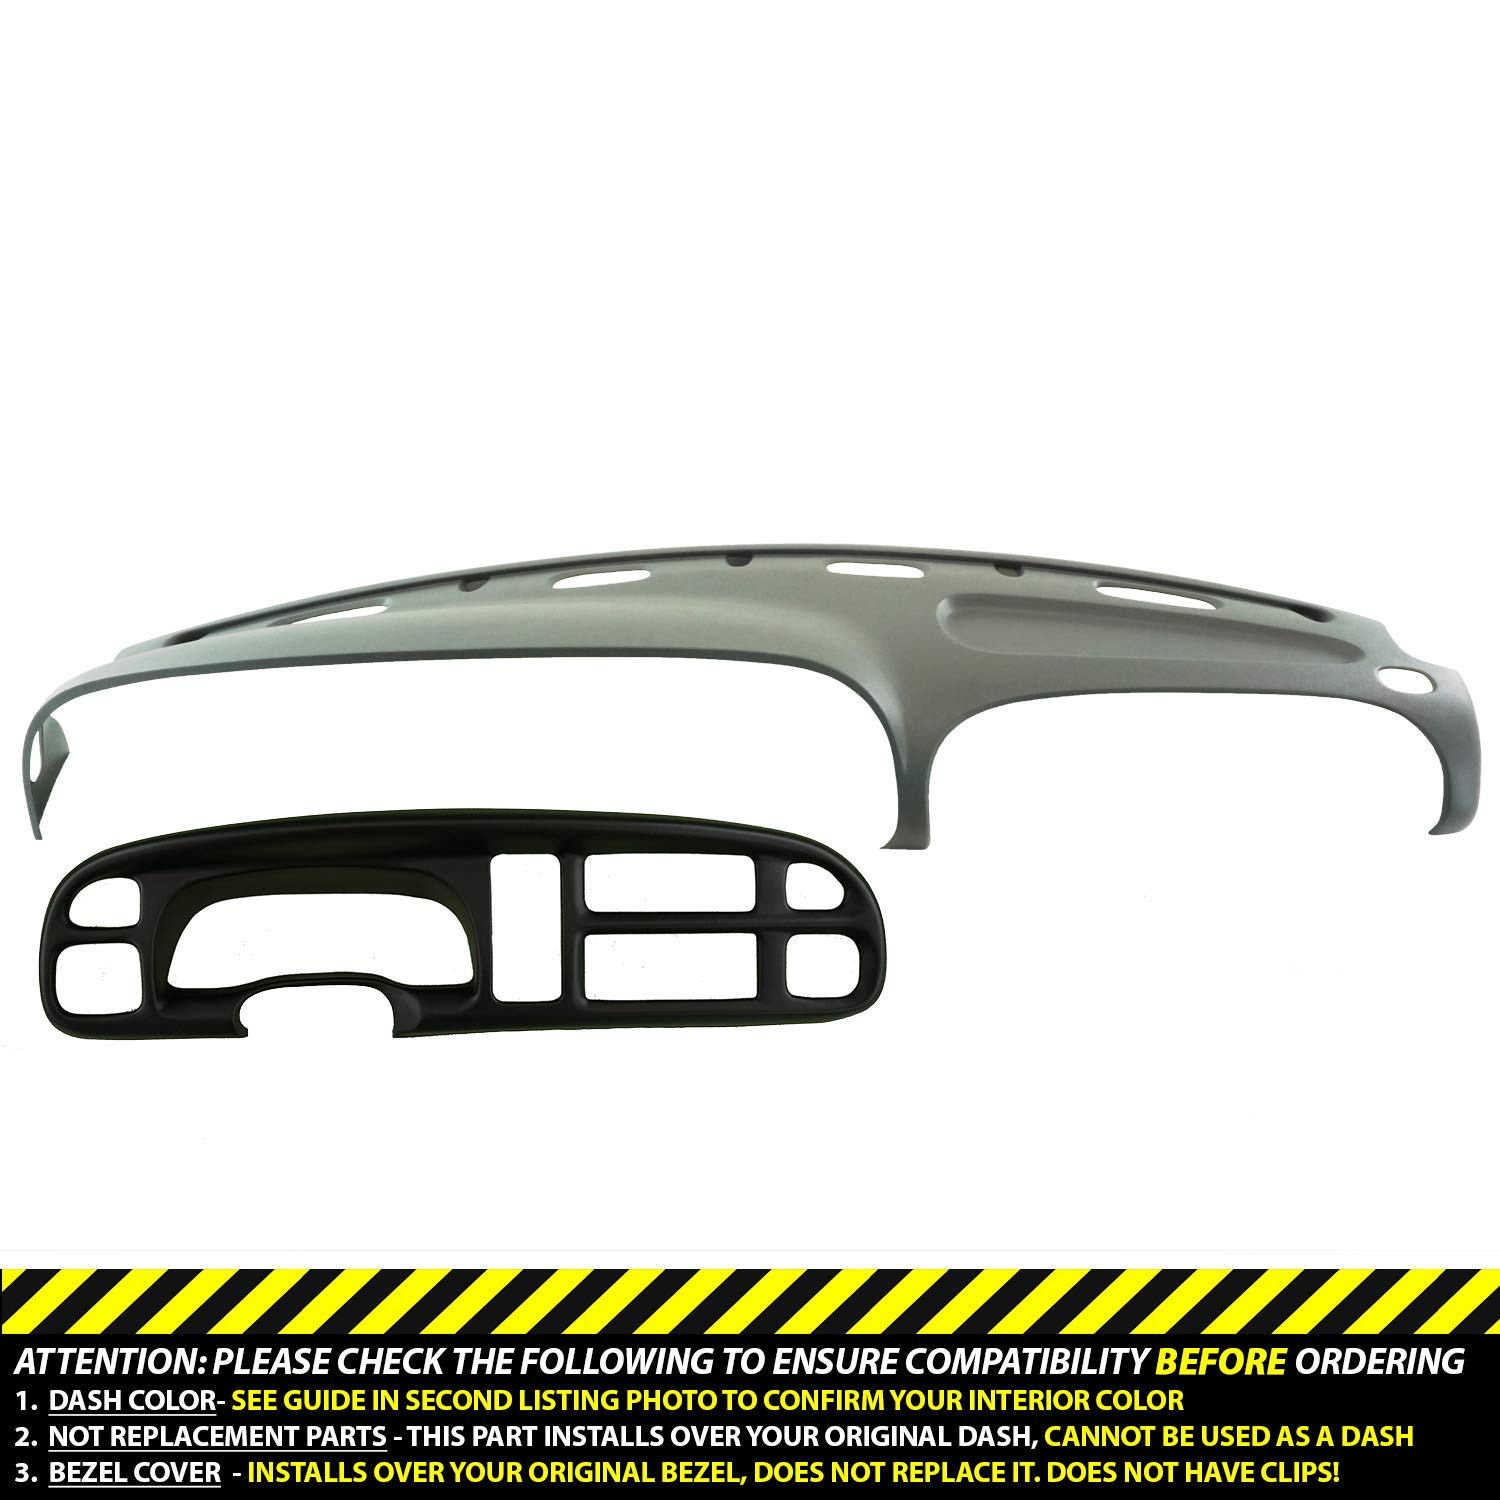 DashSkin Molded Dash & Bezel Cover Kit Compatible with 99-01 Dodge Ram in Mist Grey